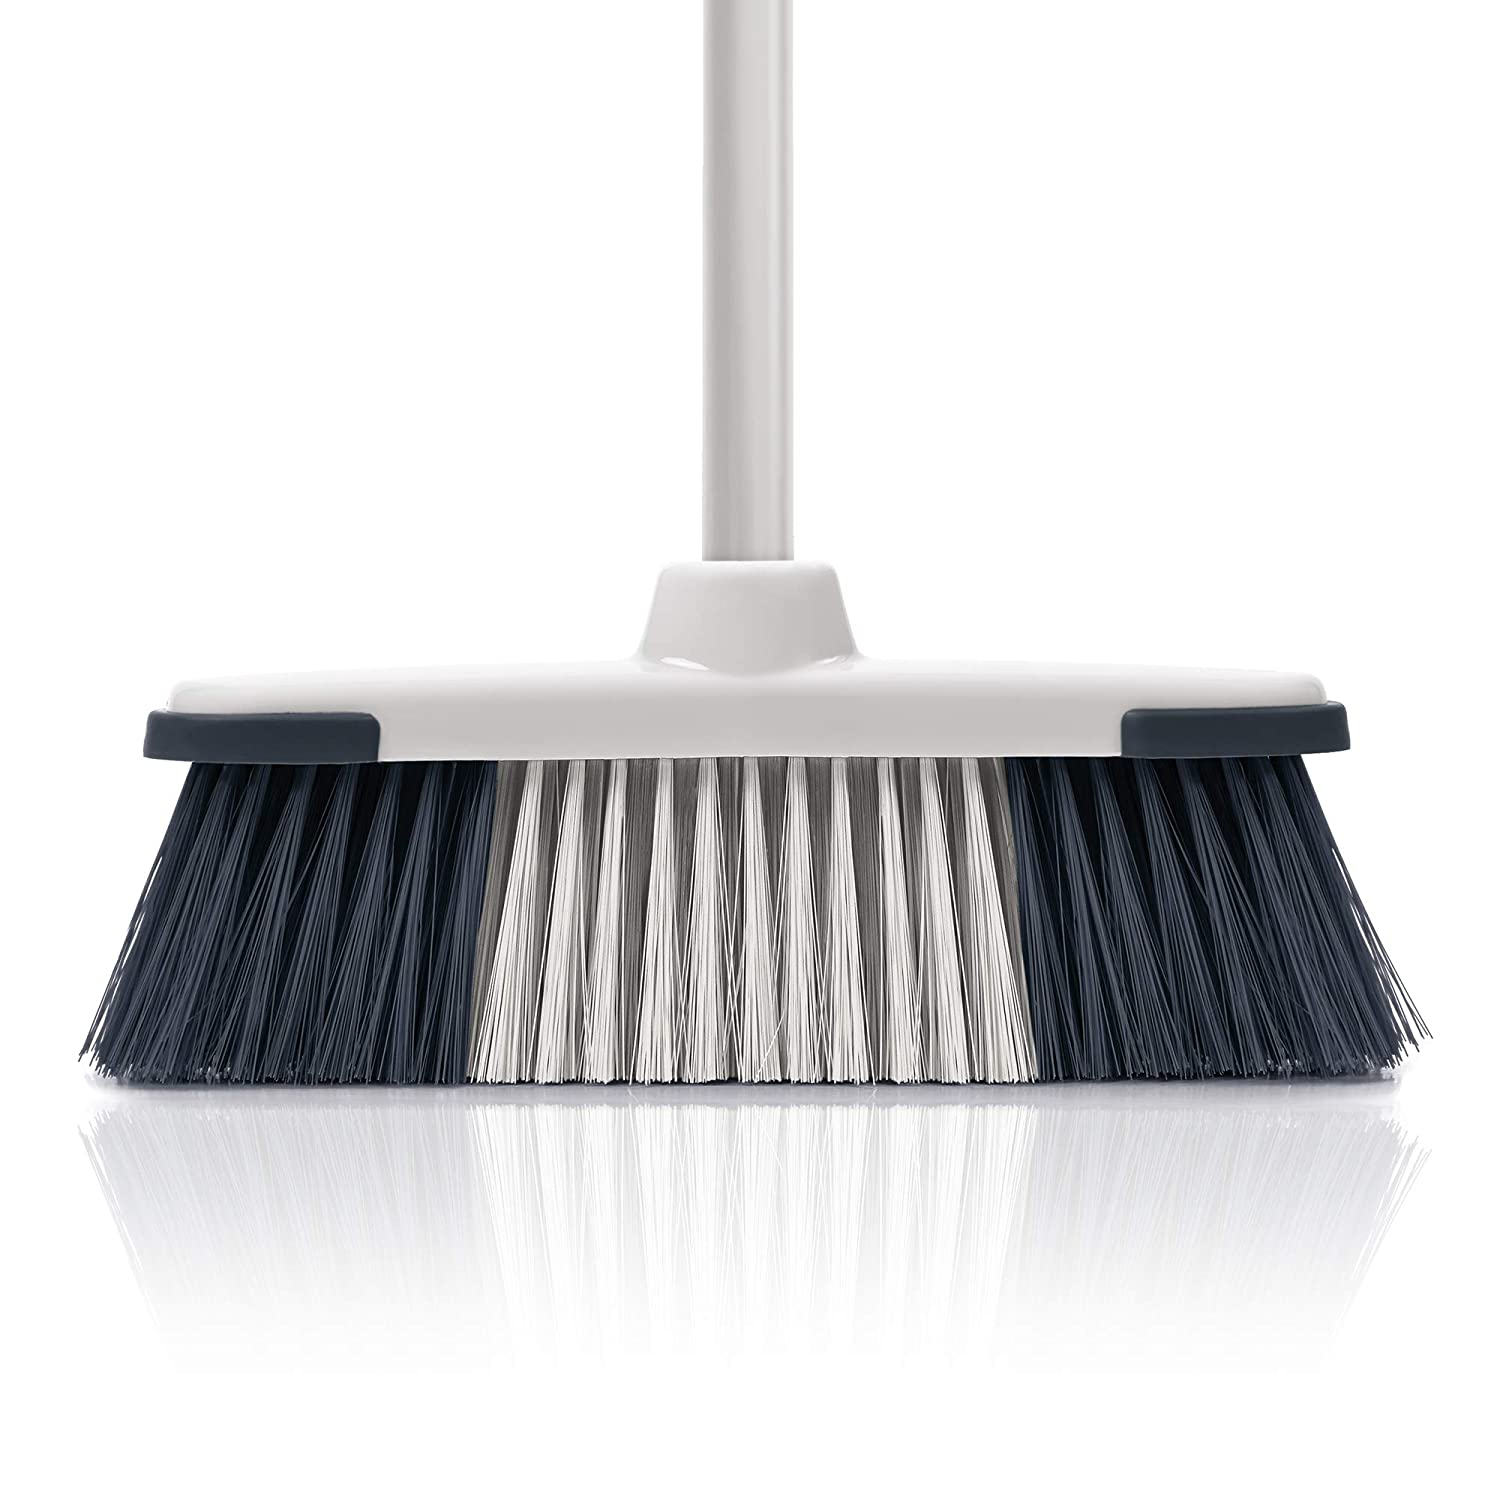 Rayen Mery 0731.10 Anti-shock Broom, Blue, Black and Grey